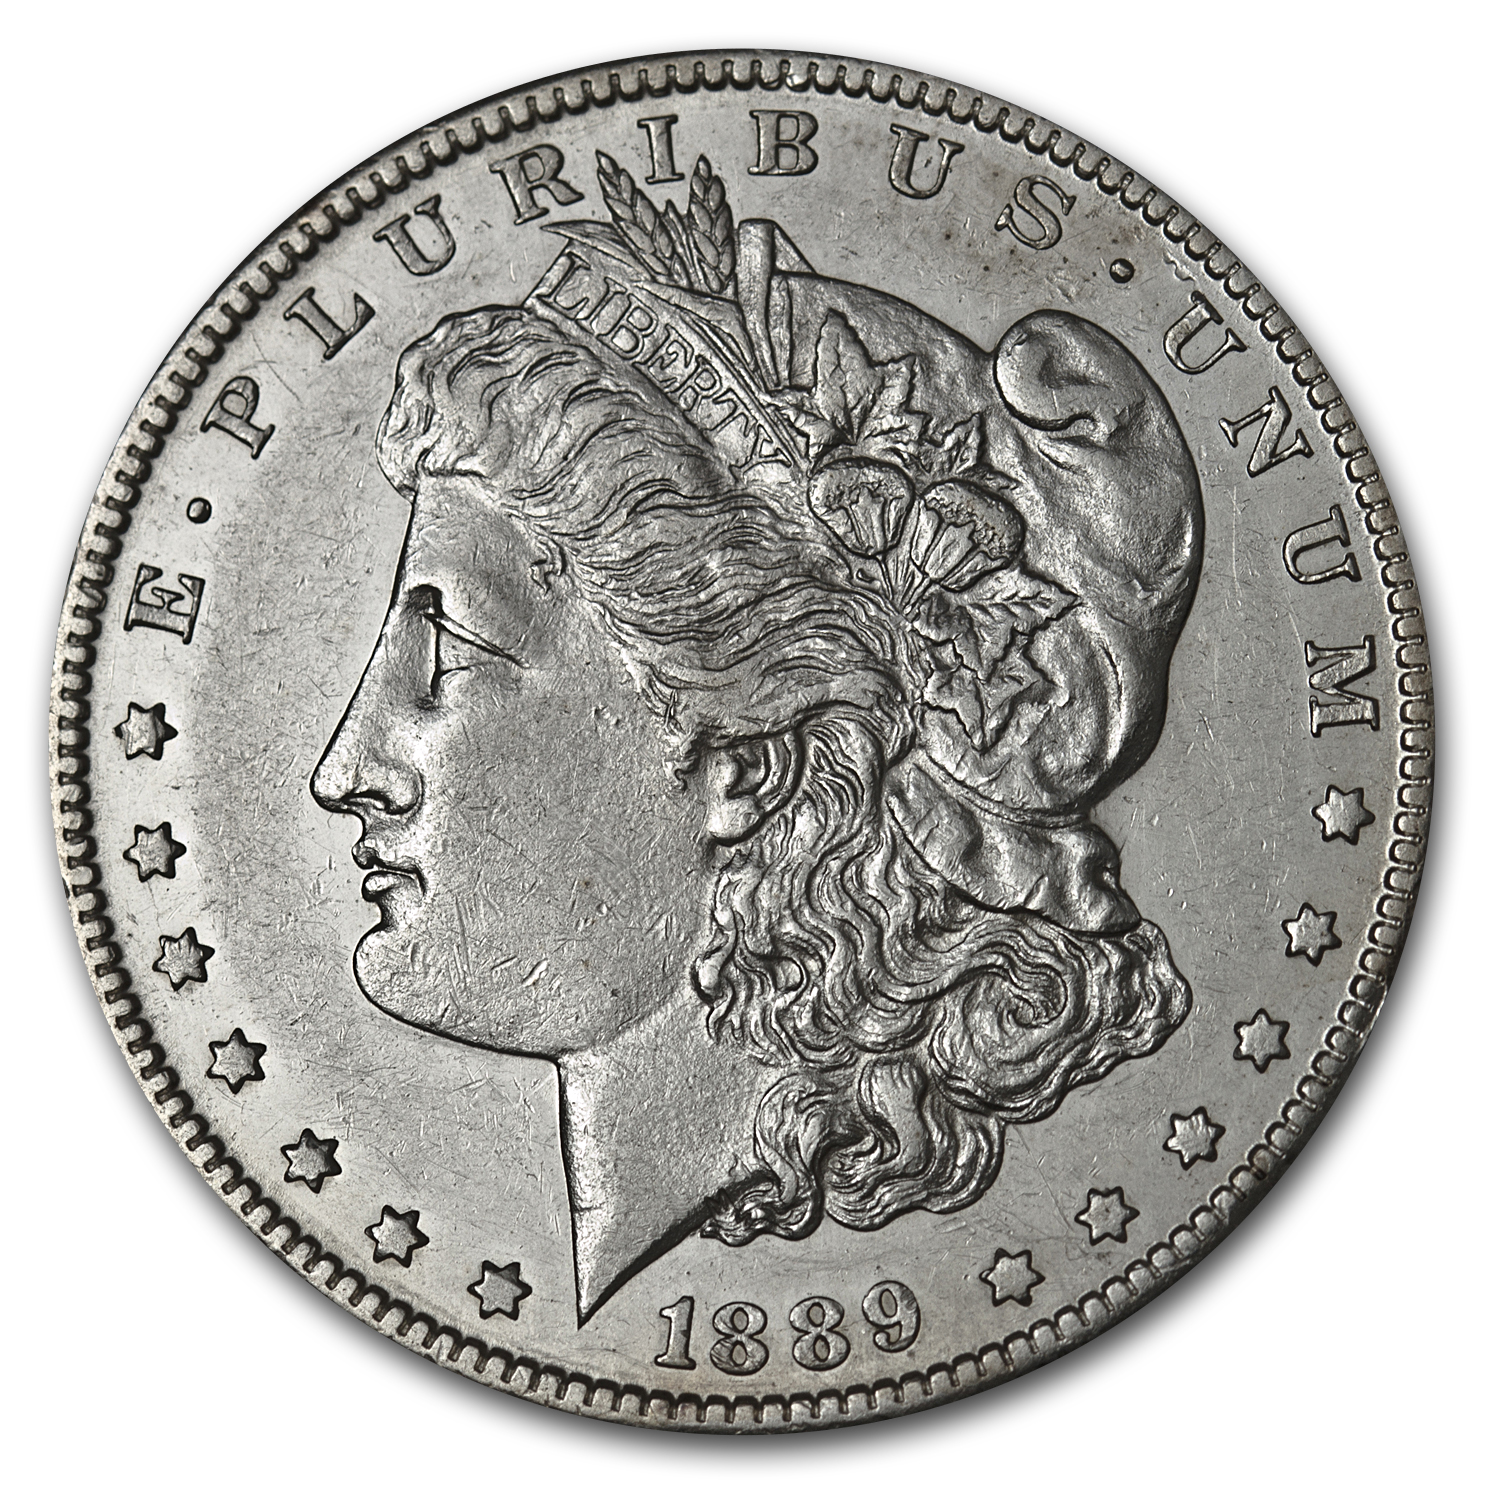 1889-CC Morgan Dollar - Almost Uncirculated - Key Date